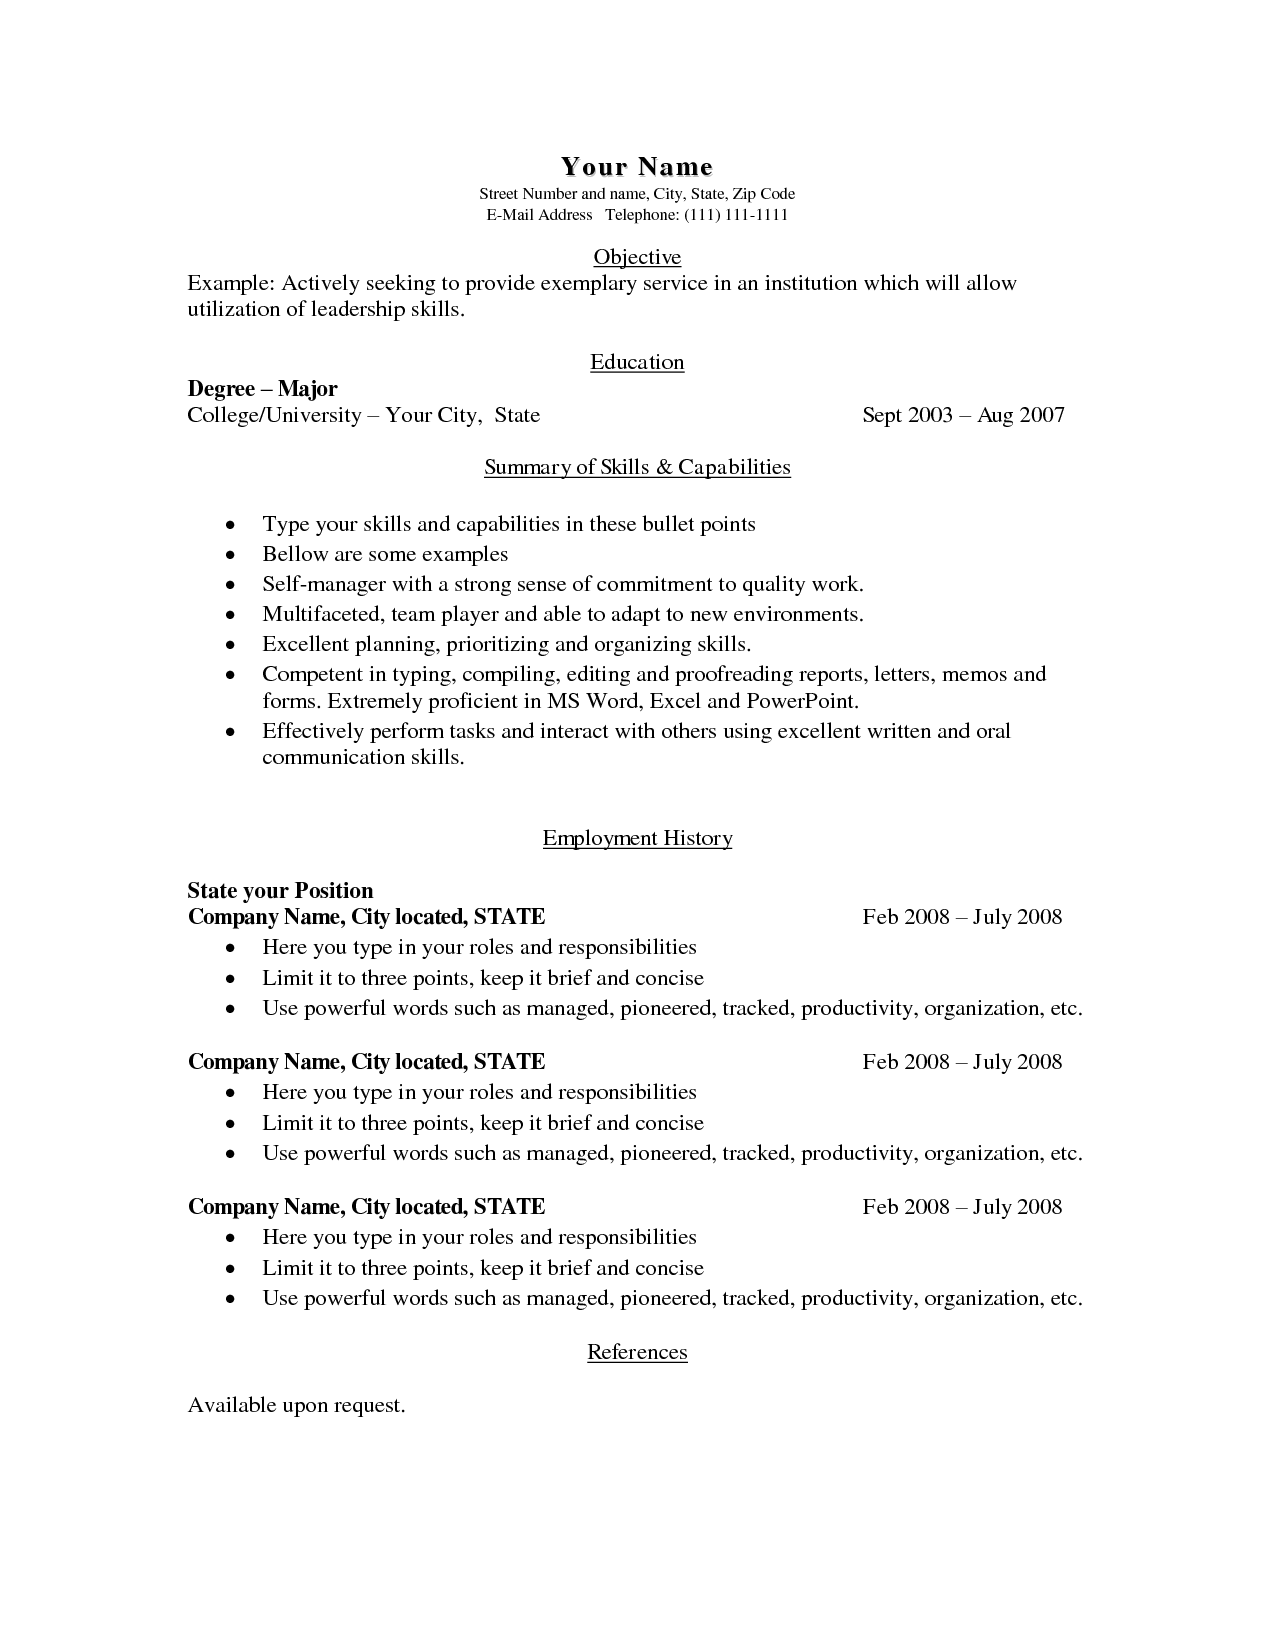 Free Basic Blank Resume Template Resume template simple